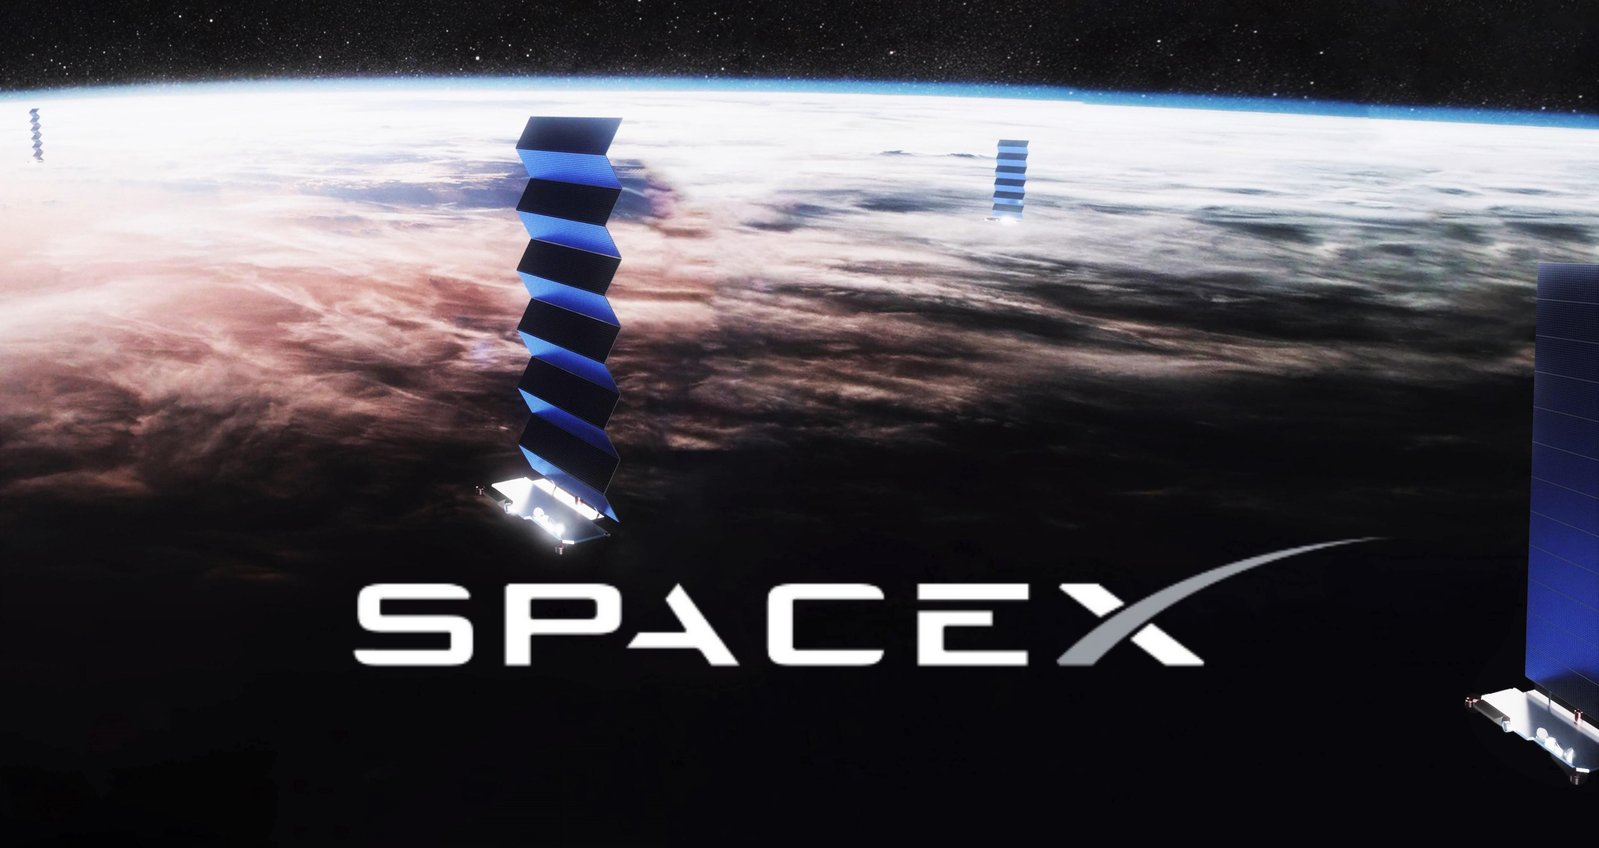 SpaceX is developing a sunshade to reduce Starlink satellites' brightness